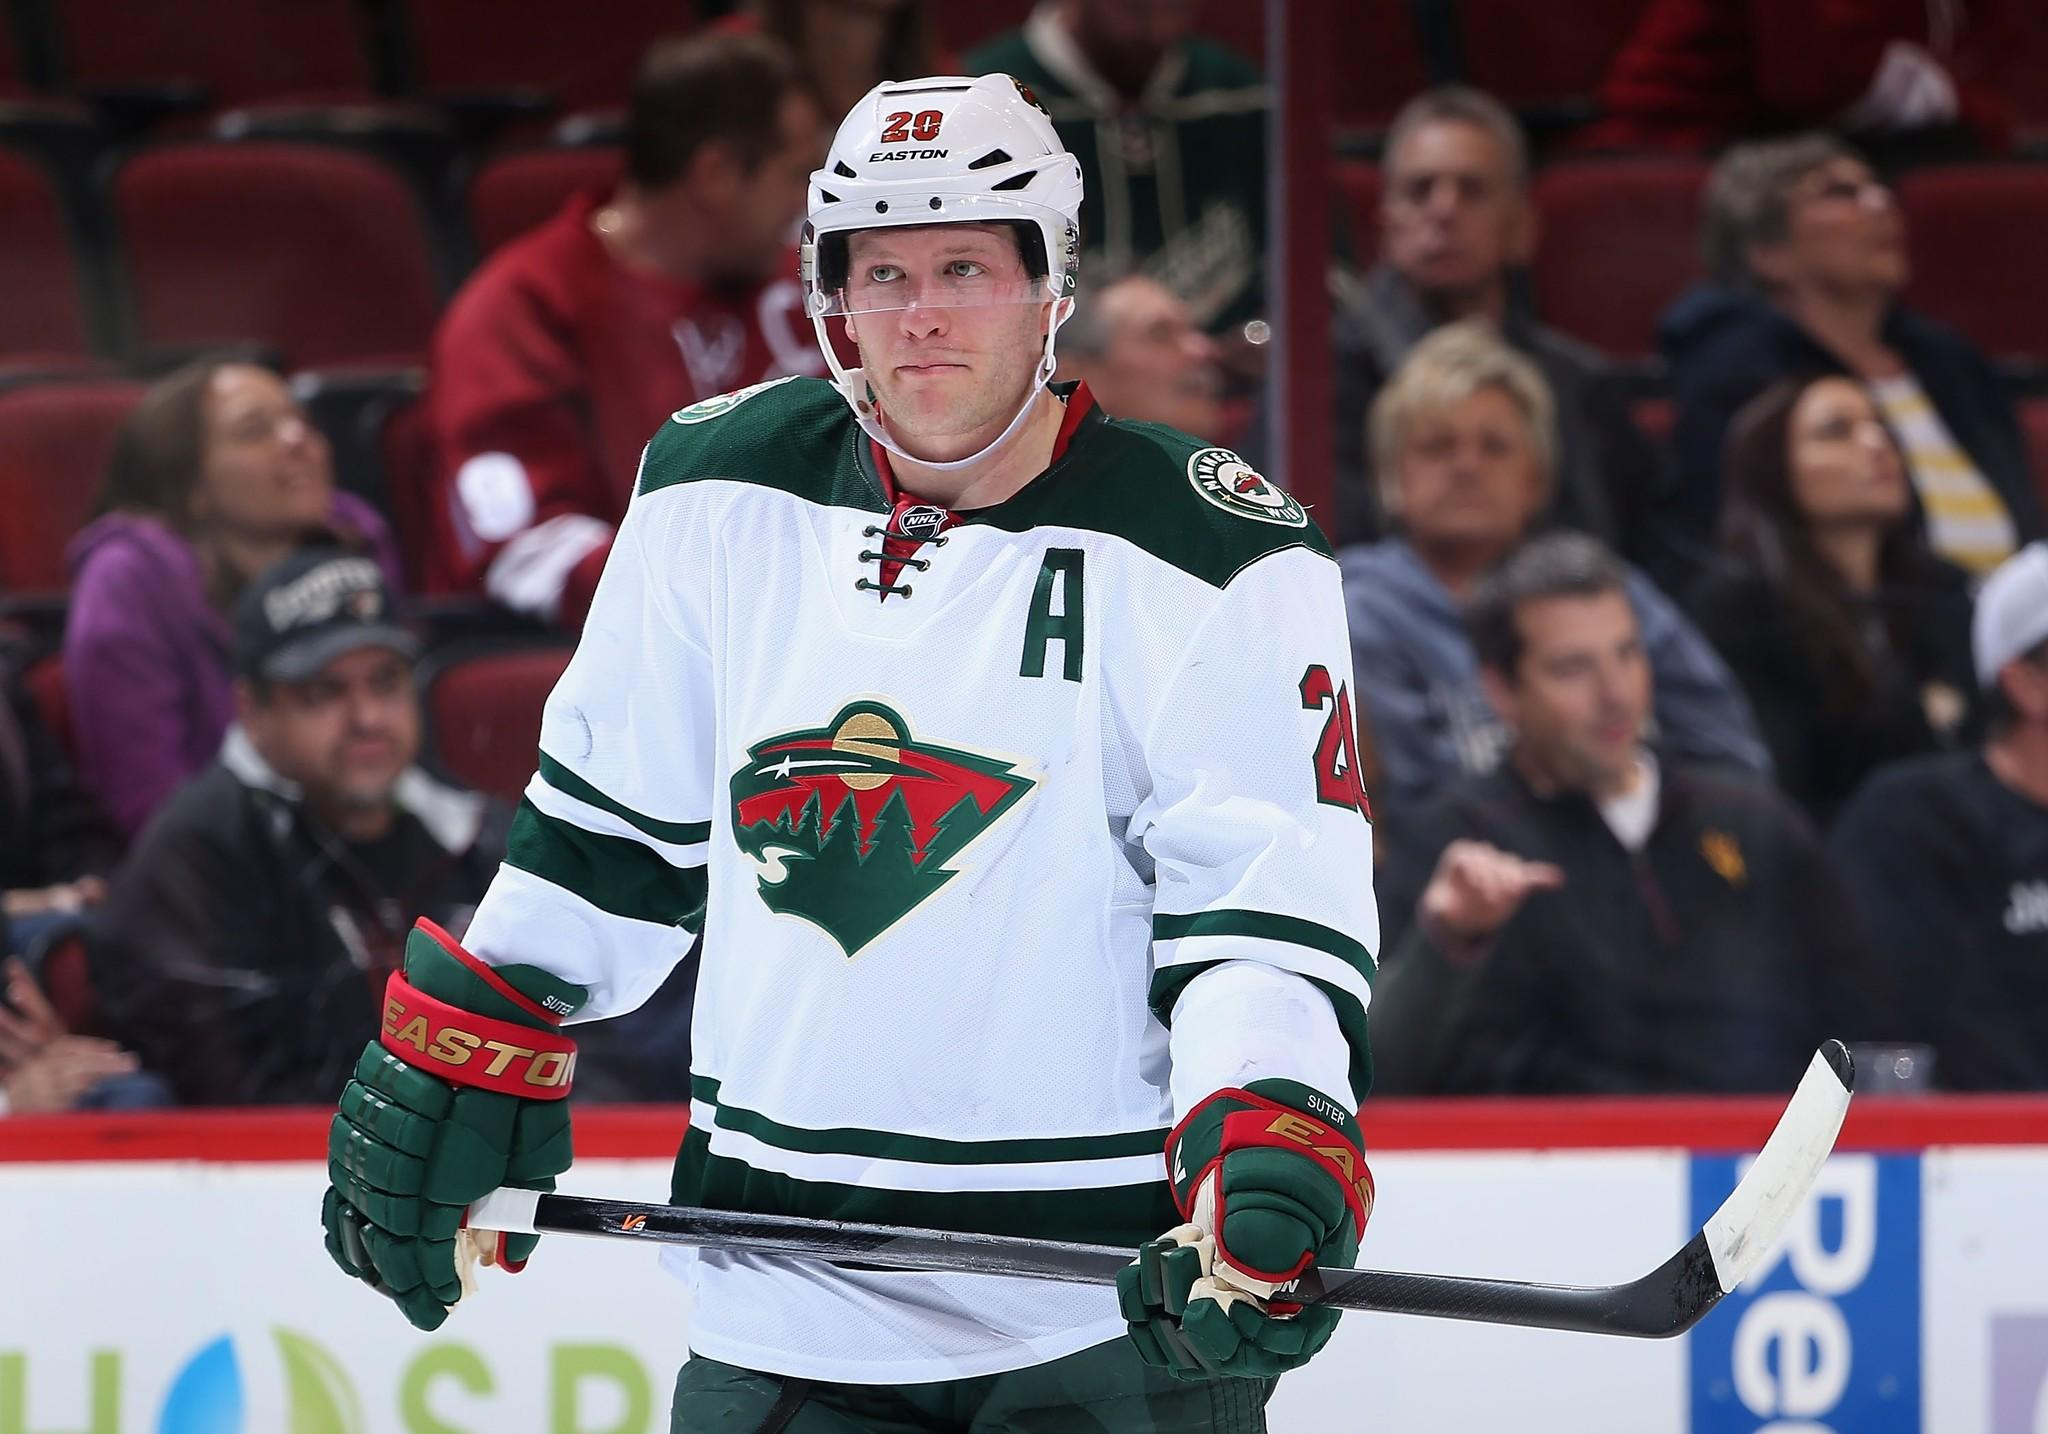 The Wild's Ryan Suter skates during a break from a game against the Coyotes.